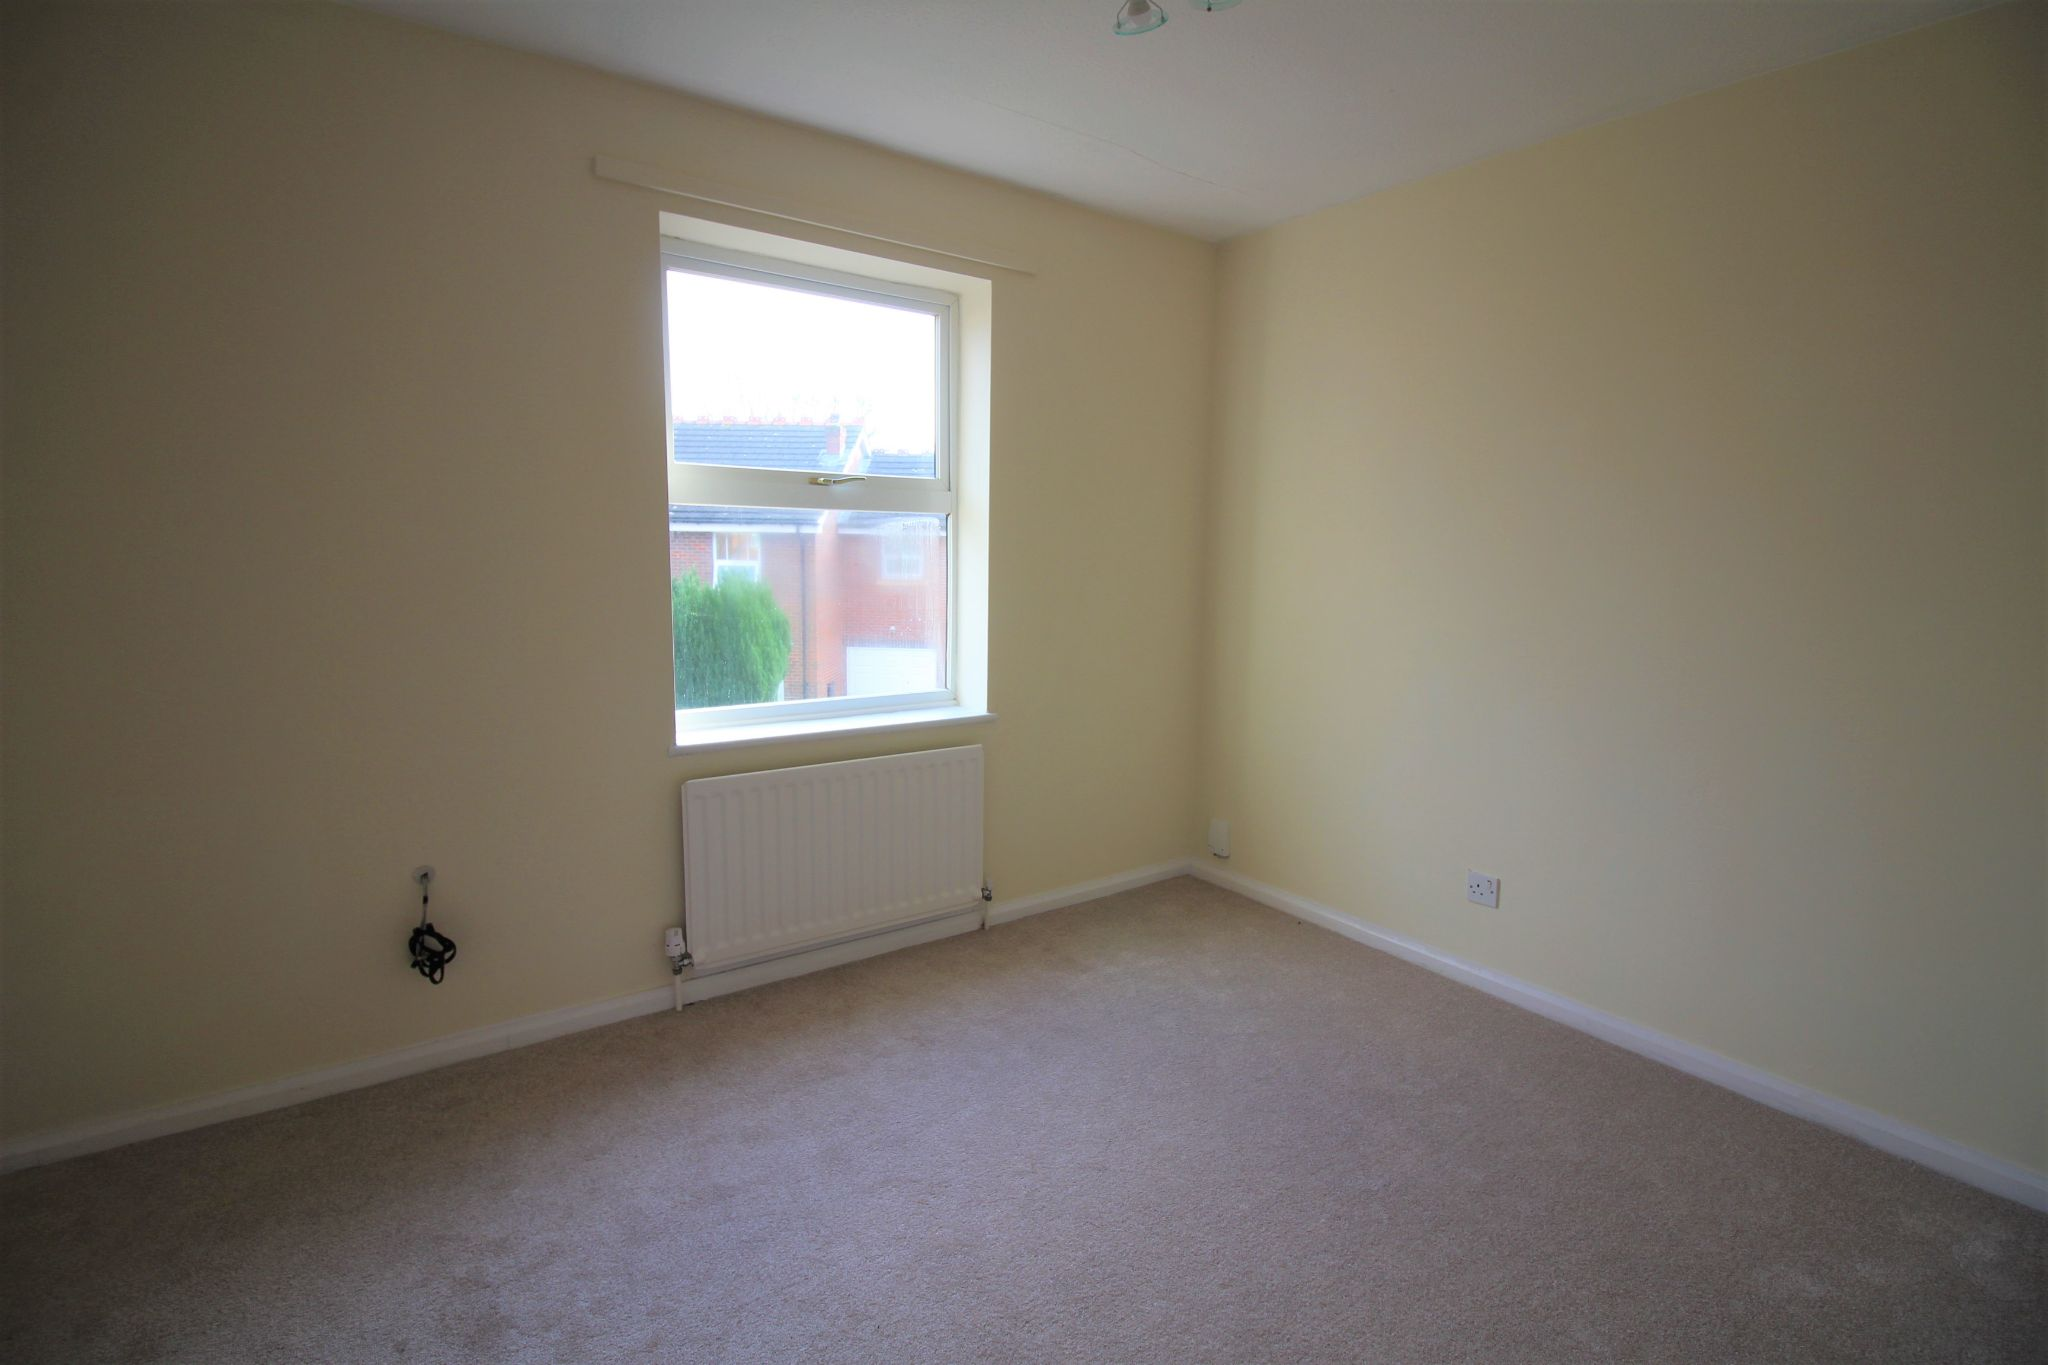 3 bedroom semi-detached house Let Agreed in Solihull - Photograph 9.